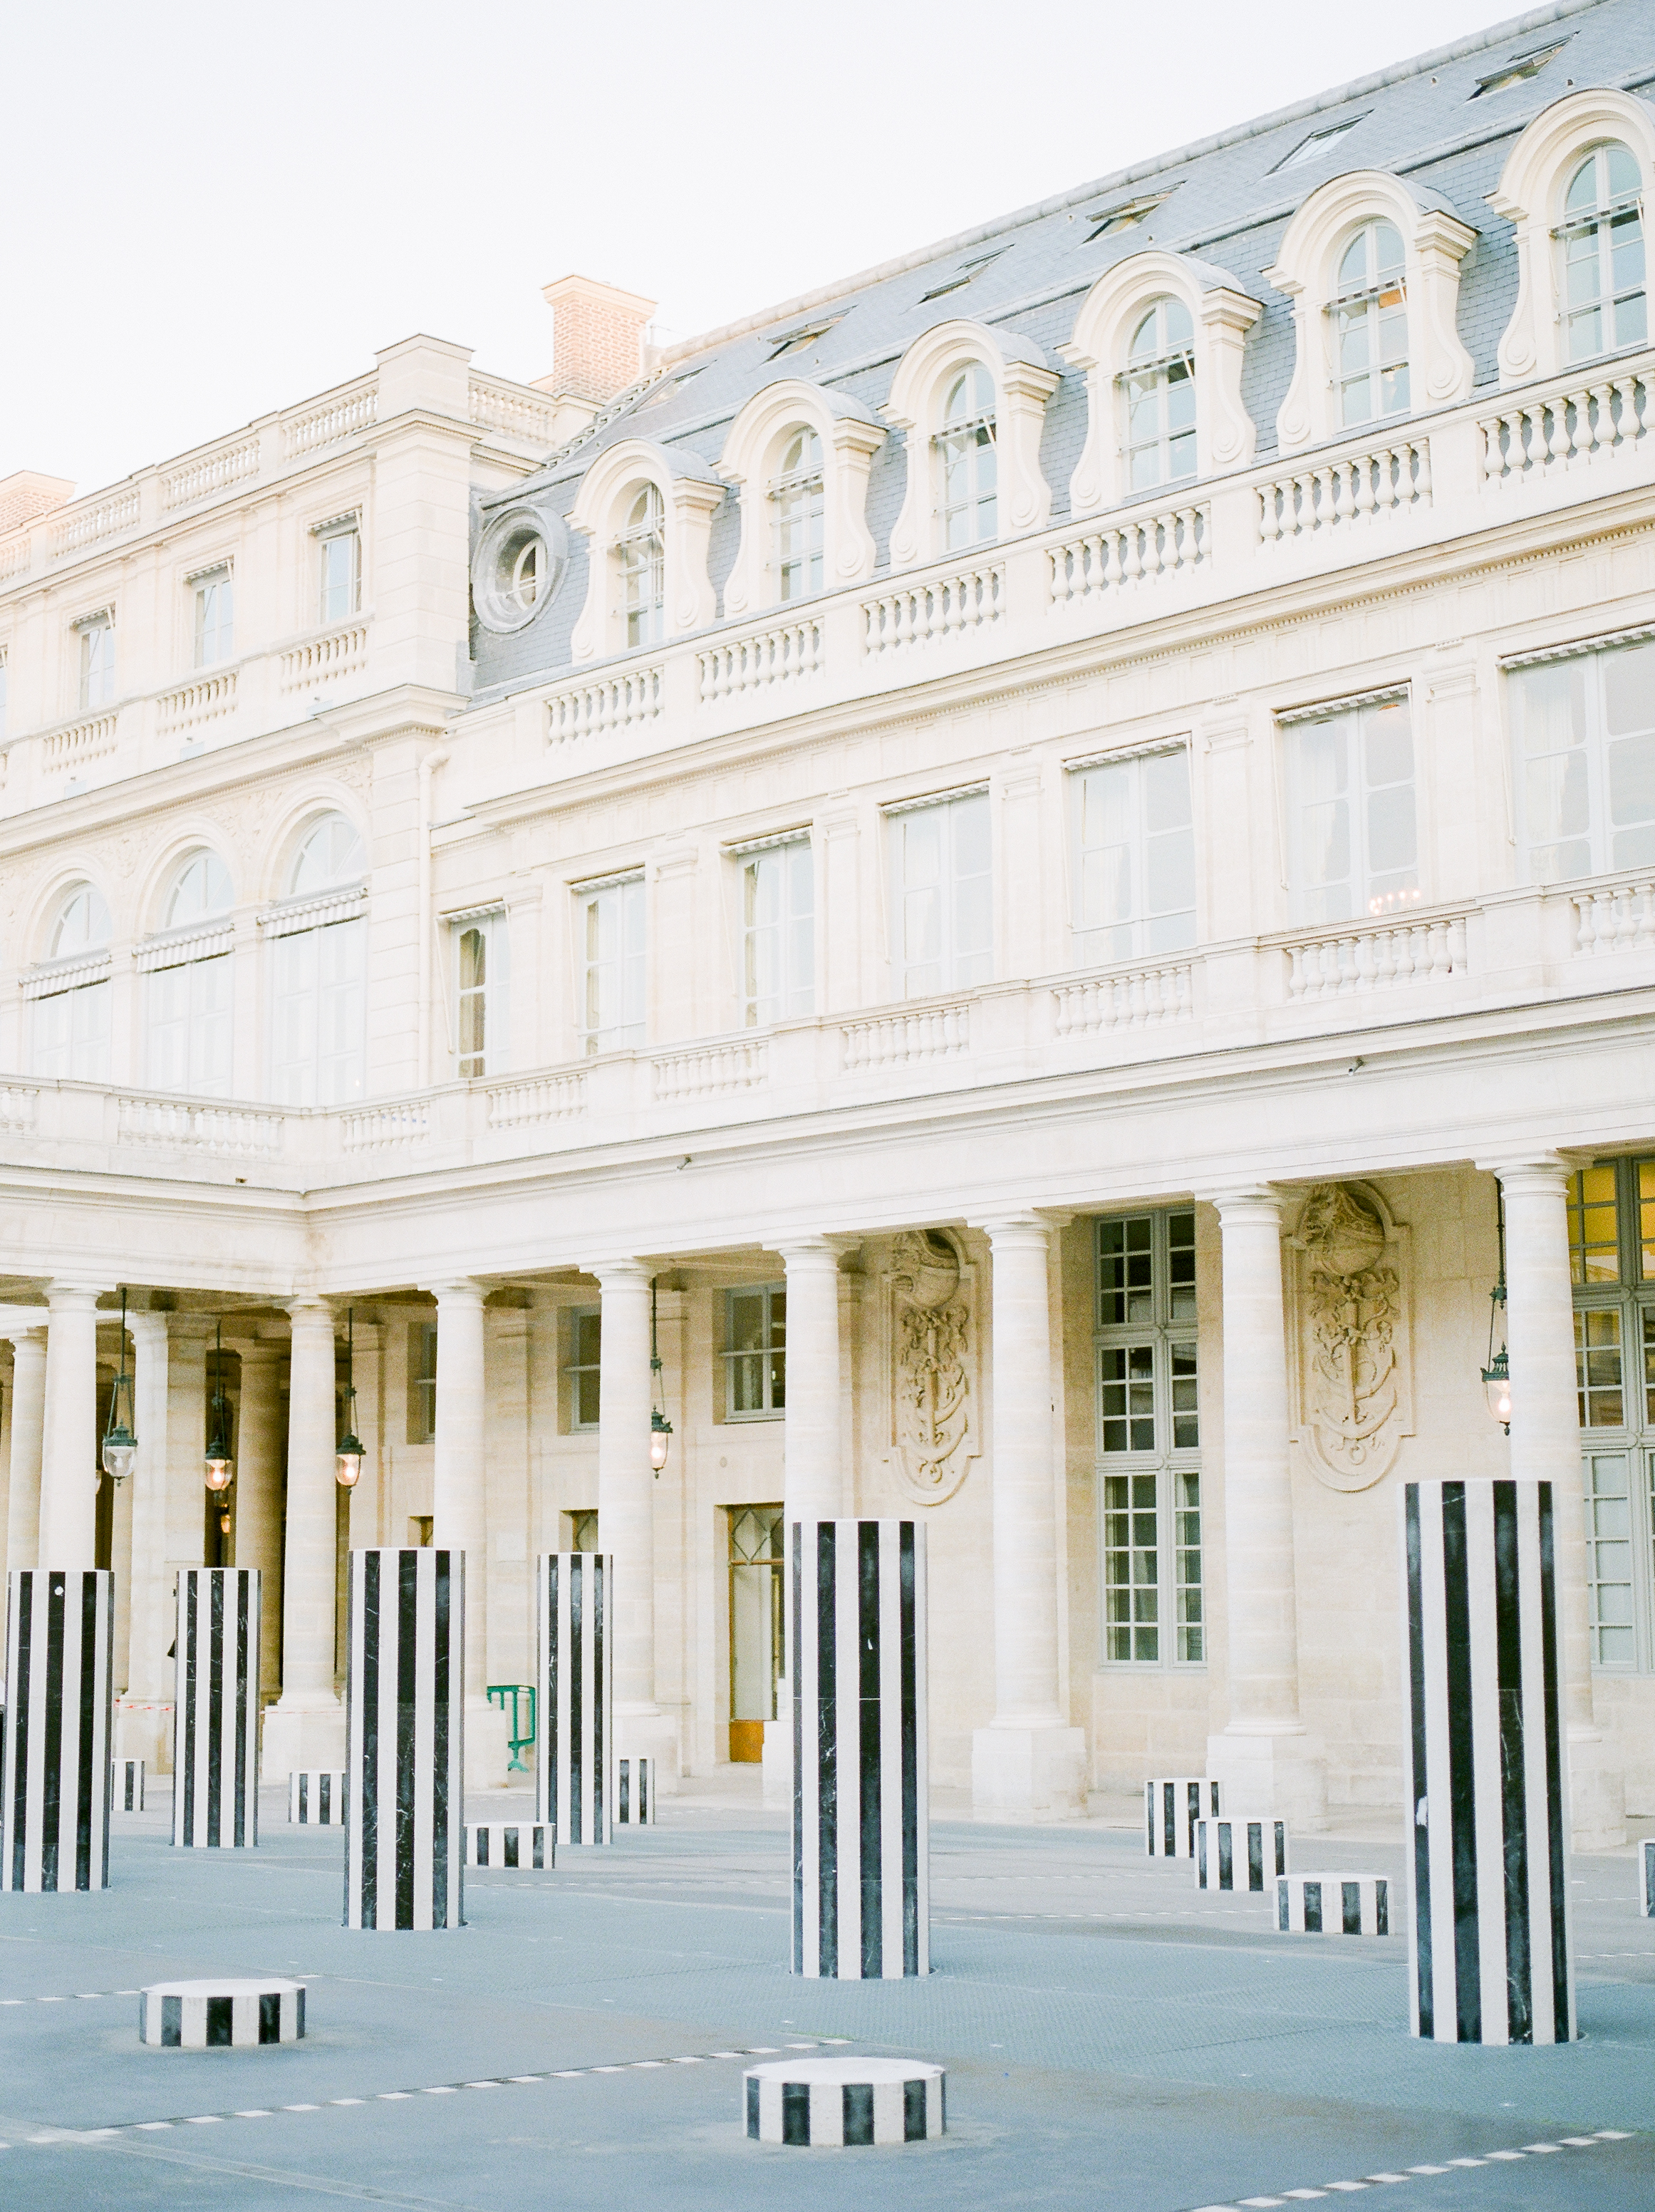 palace-royal-in-paris-during-the-winter.jpg